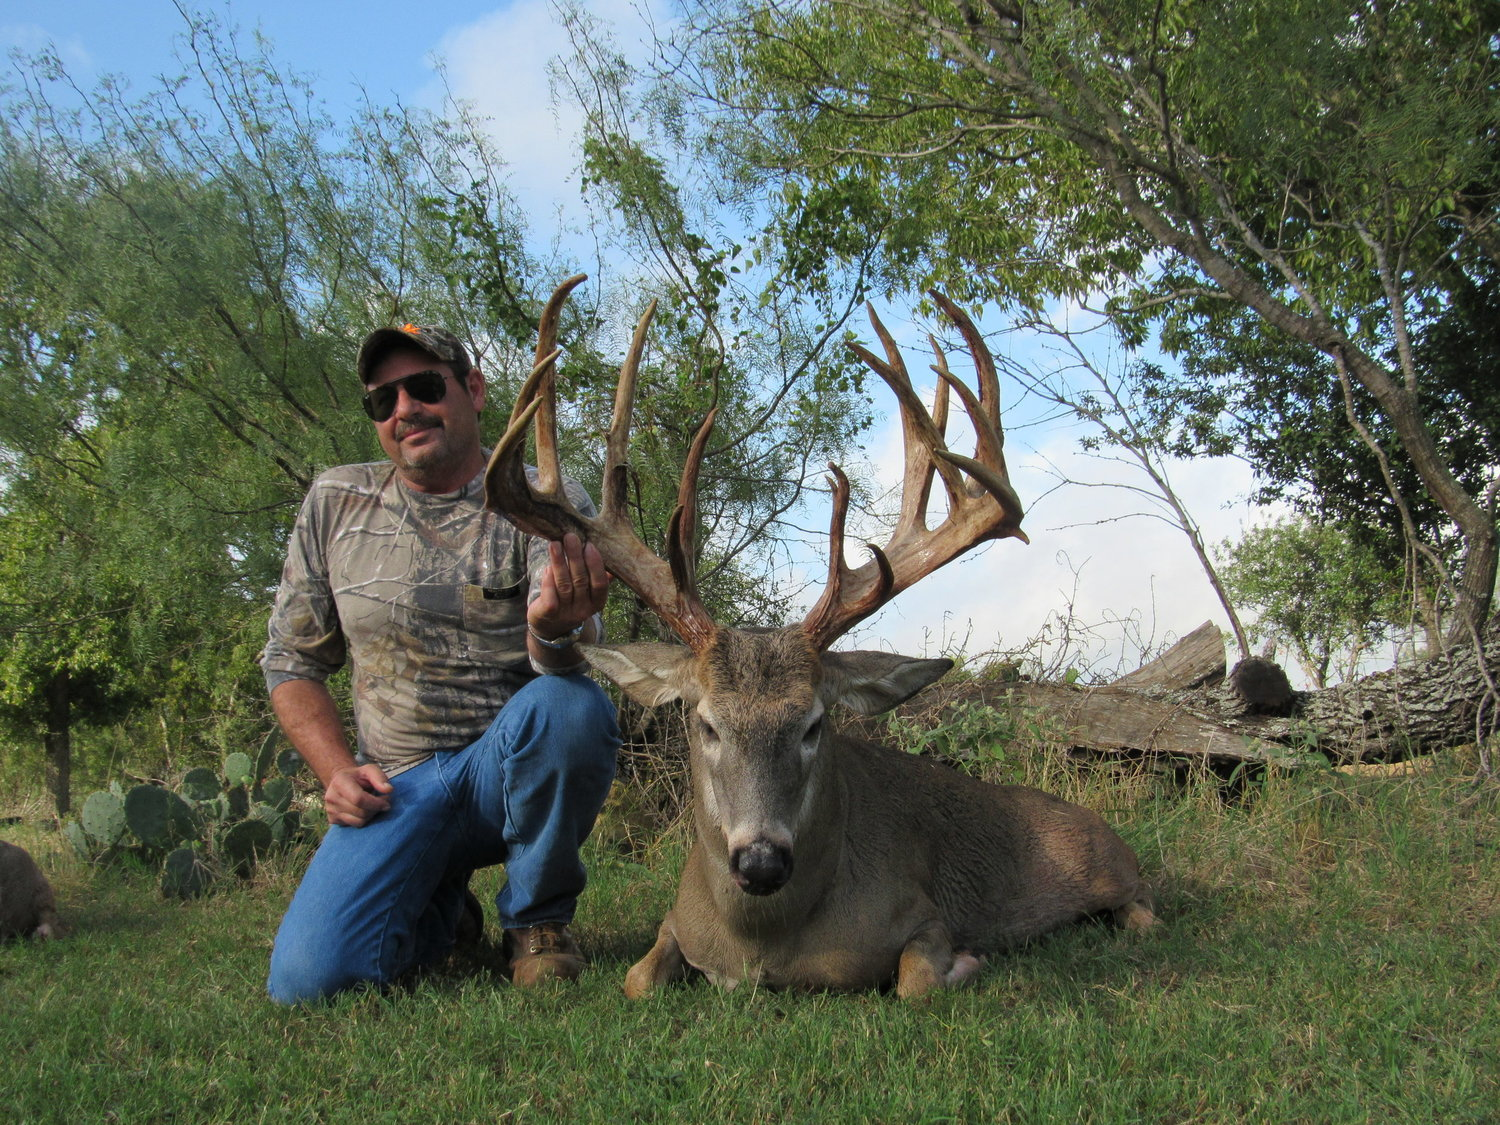 trophy-whitetail-deer-hunt--15615200521894463407